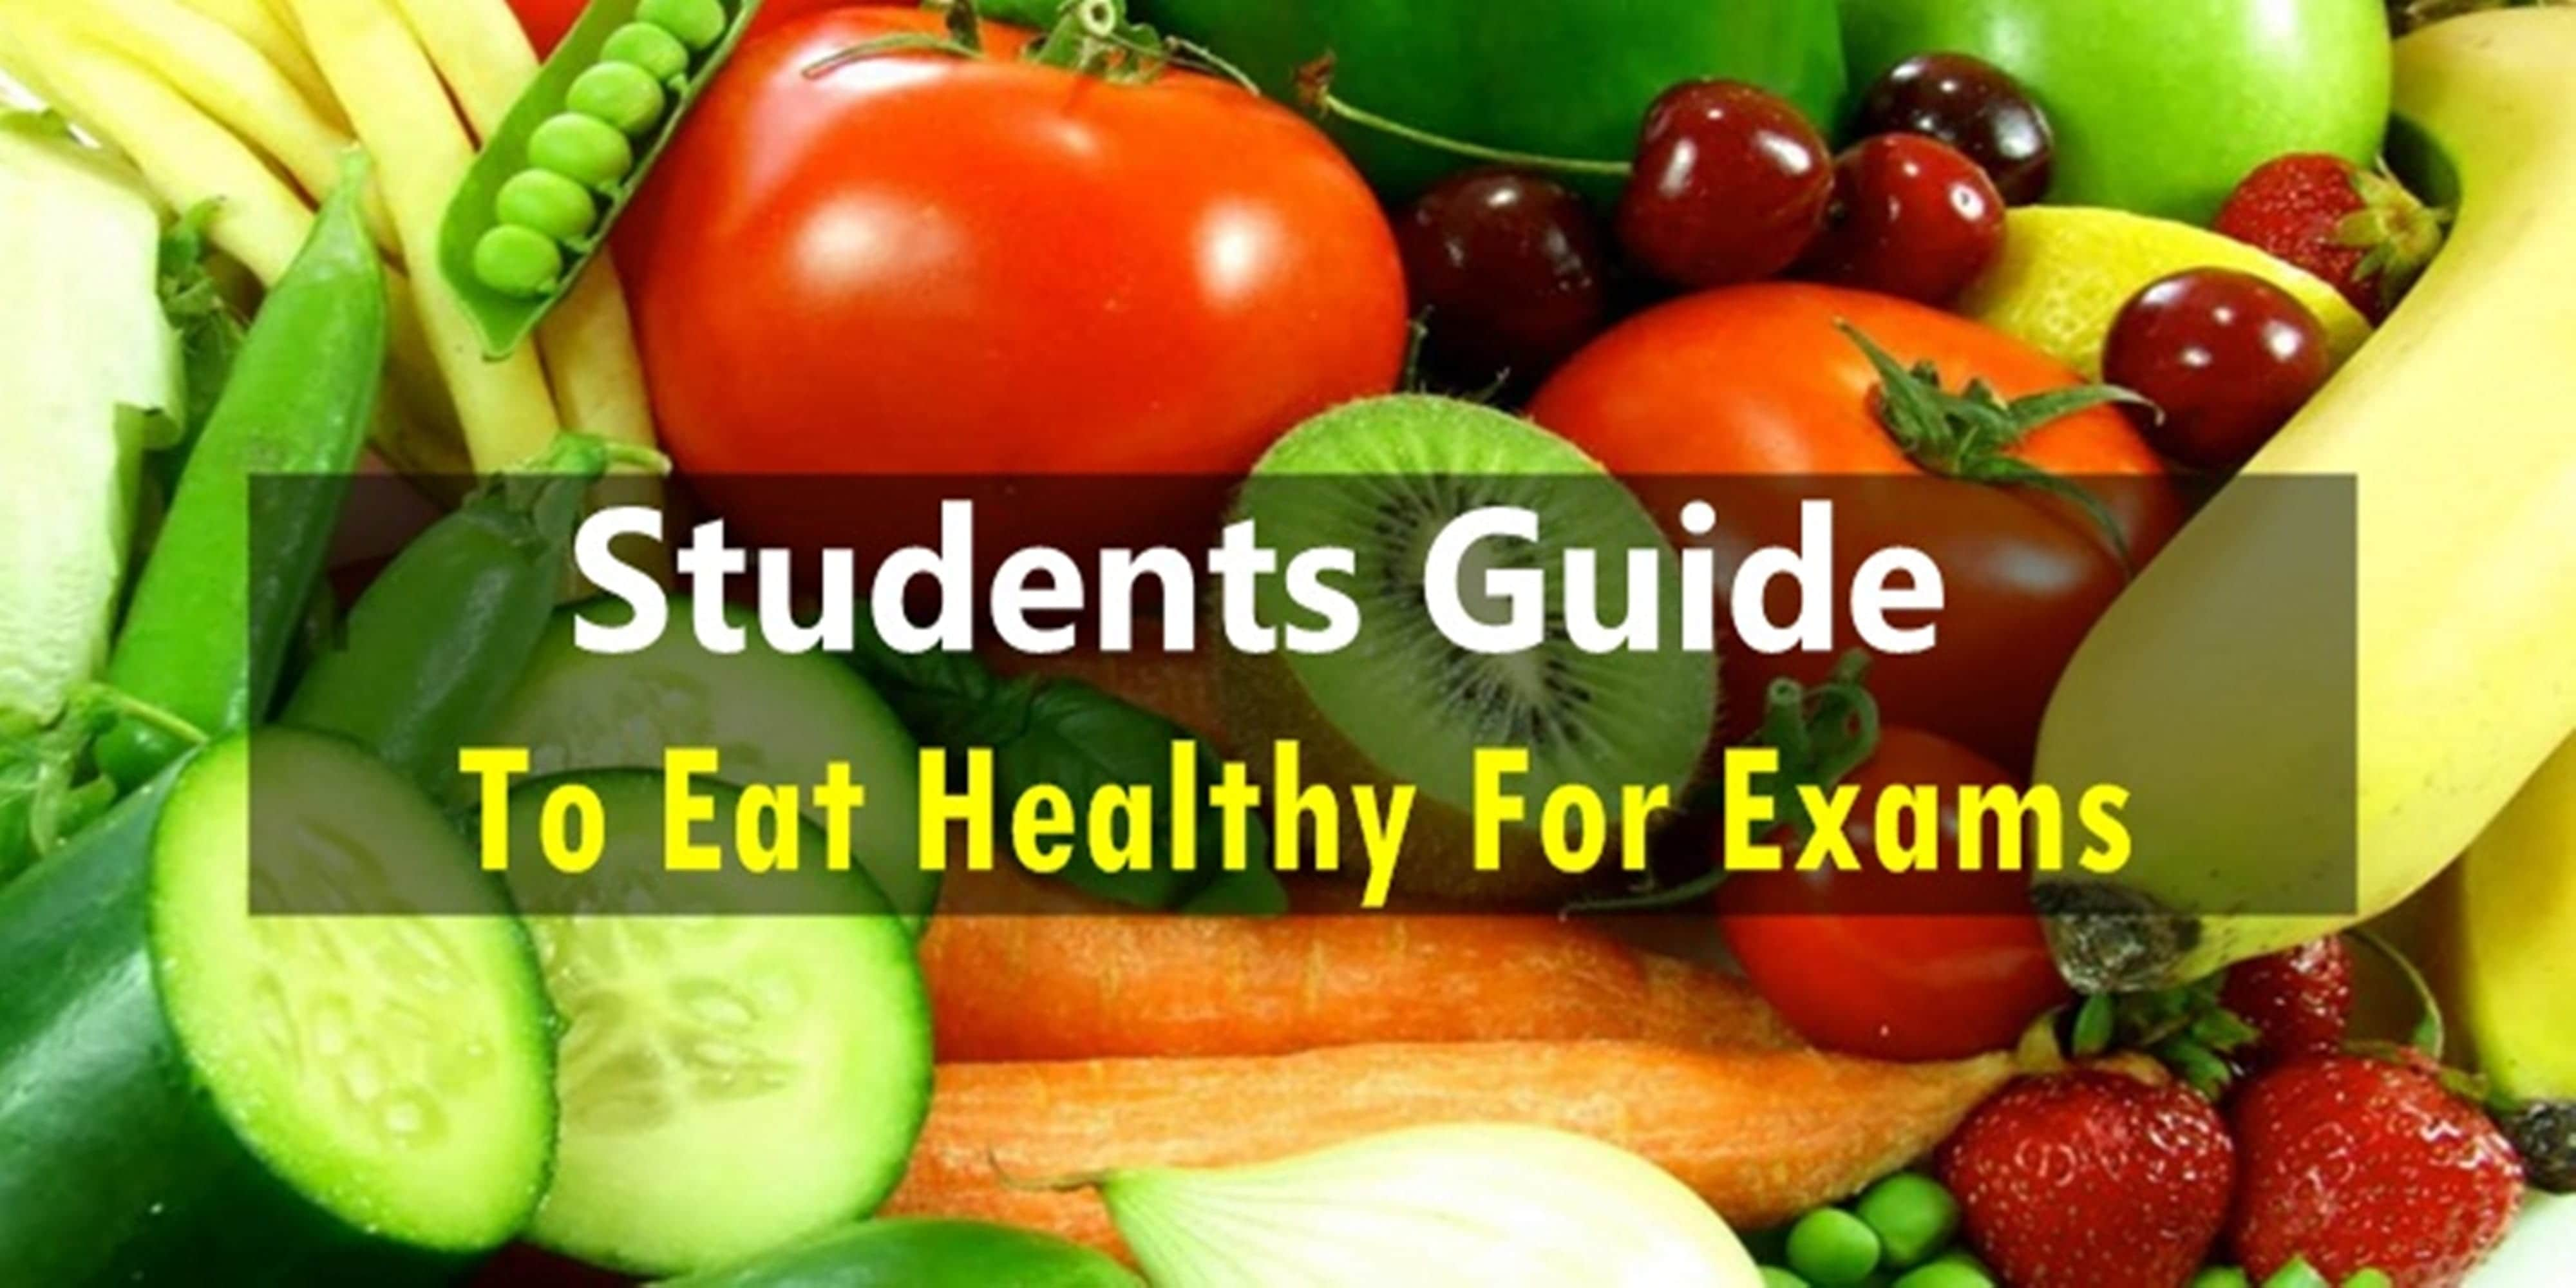 Students Guide To Eat Healthy For Exams